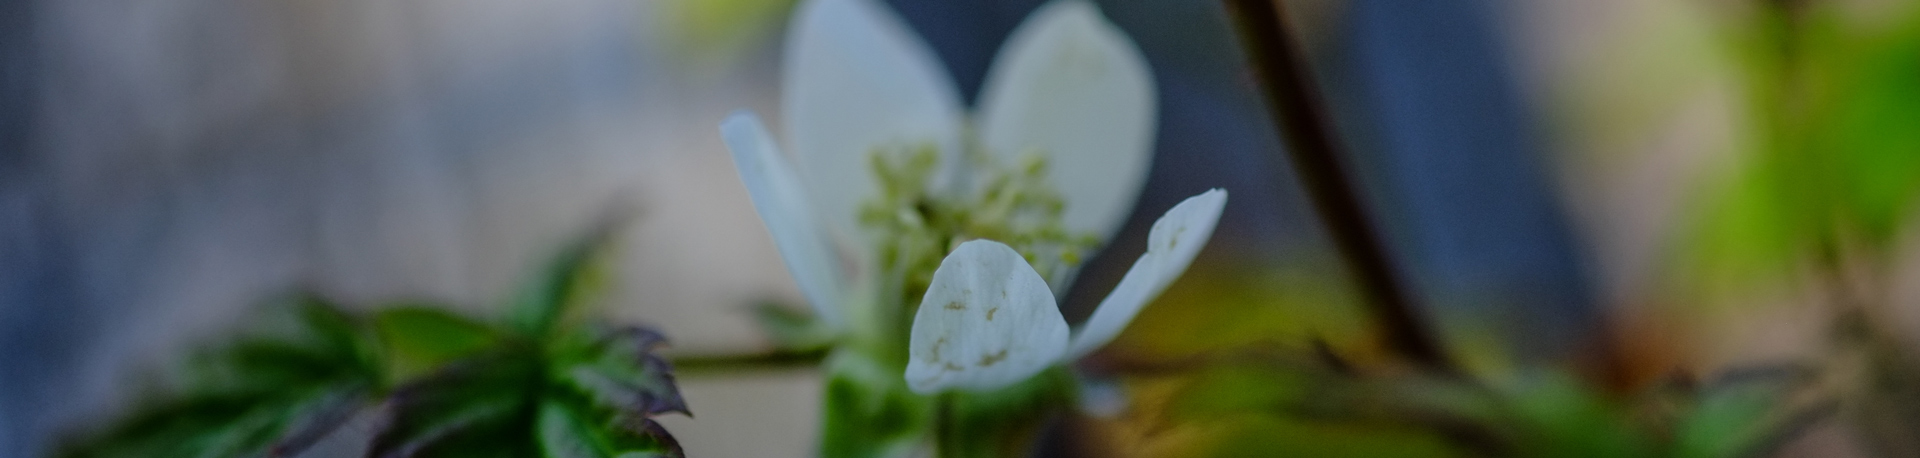 Delicate white flower on a green stem